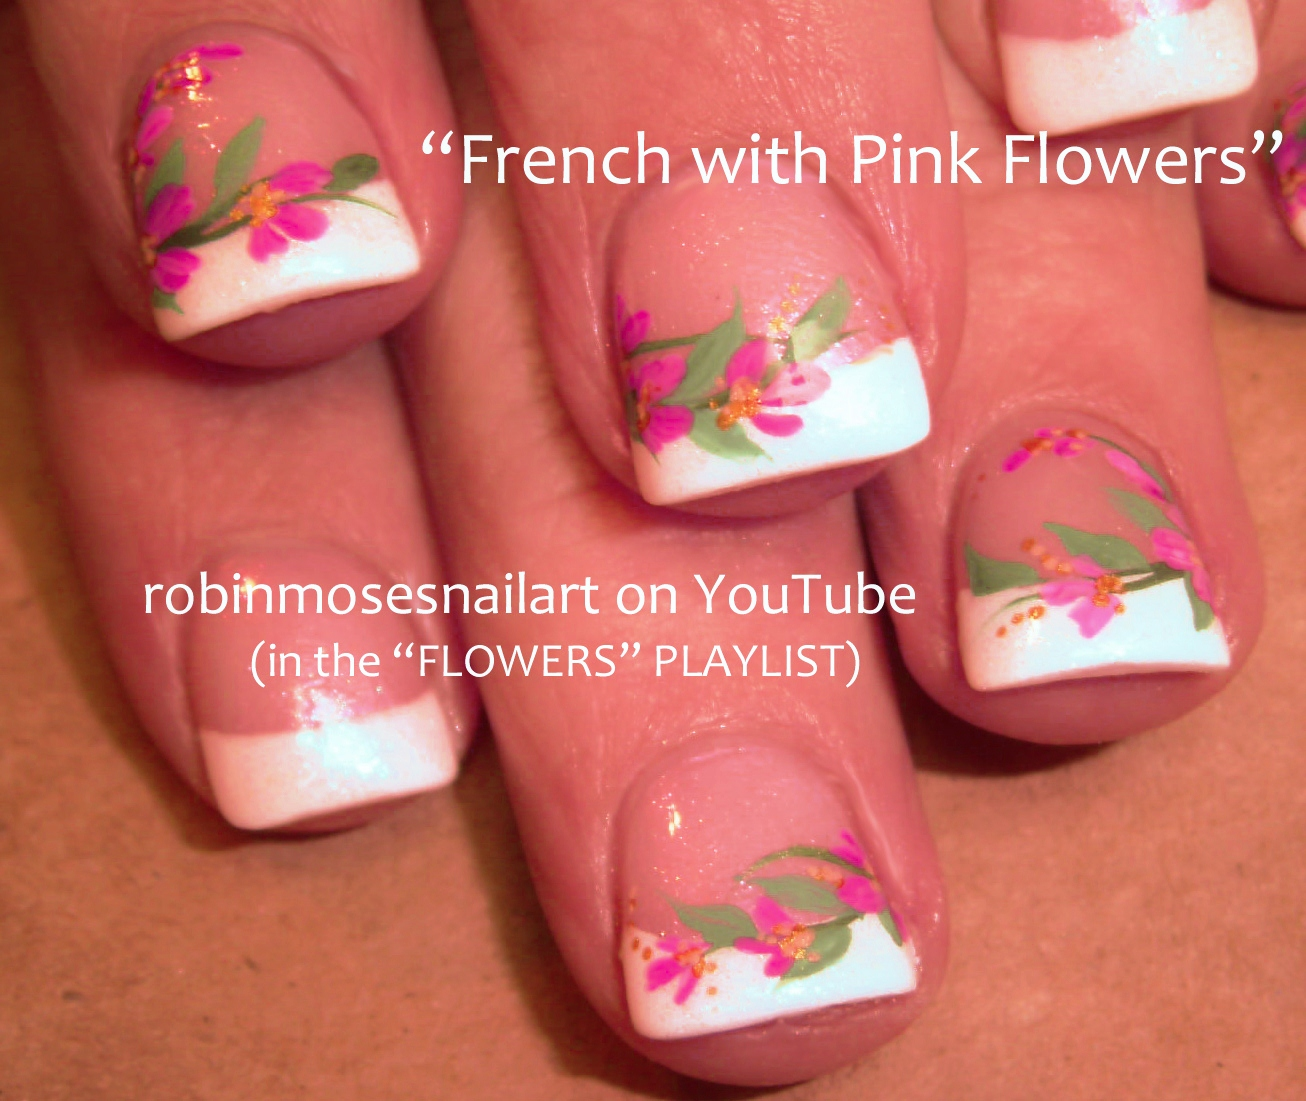 Robin moses nail art cutest pink french manicure nails ever short nails w pink flowers cutest nail art ever prinsesfo Gallery